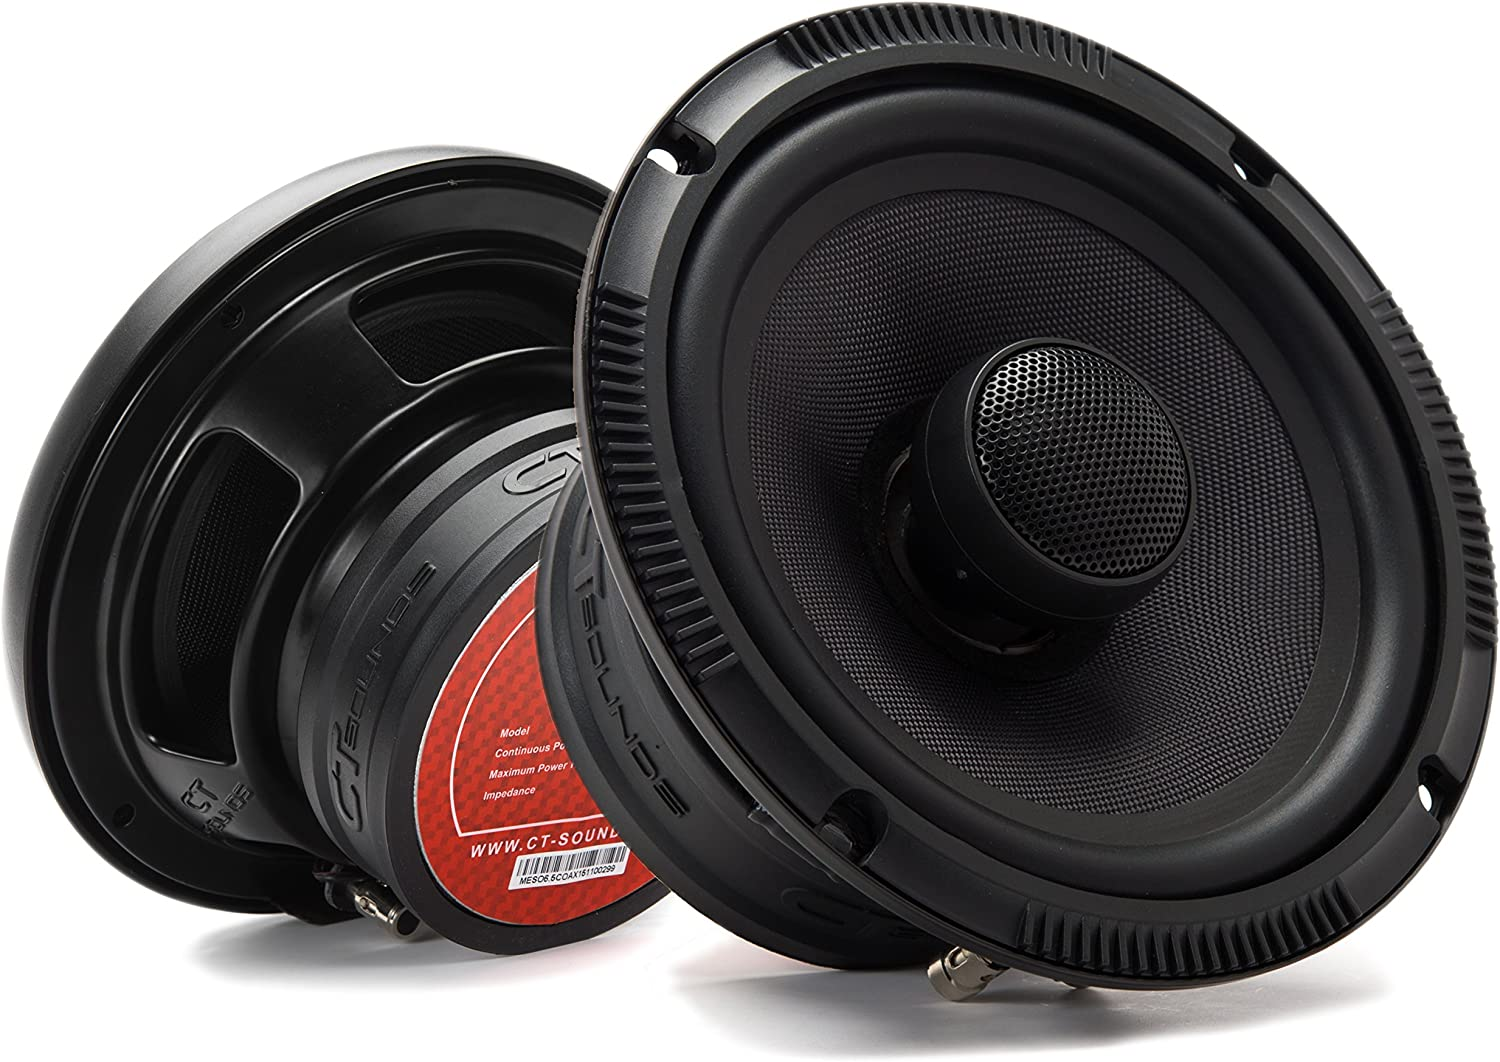 CT Sounds 6.5 Inch Coaxial Car Speakers